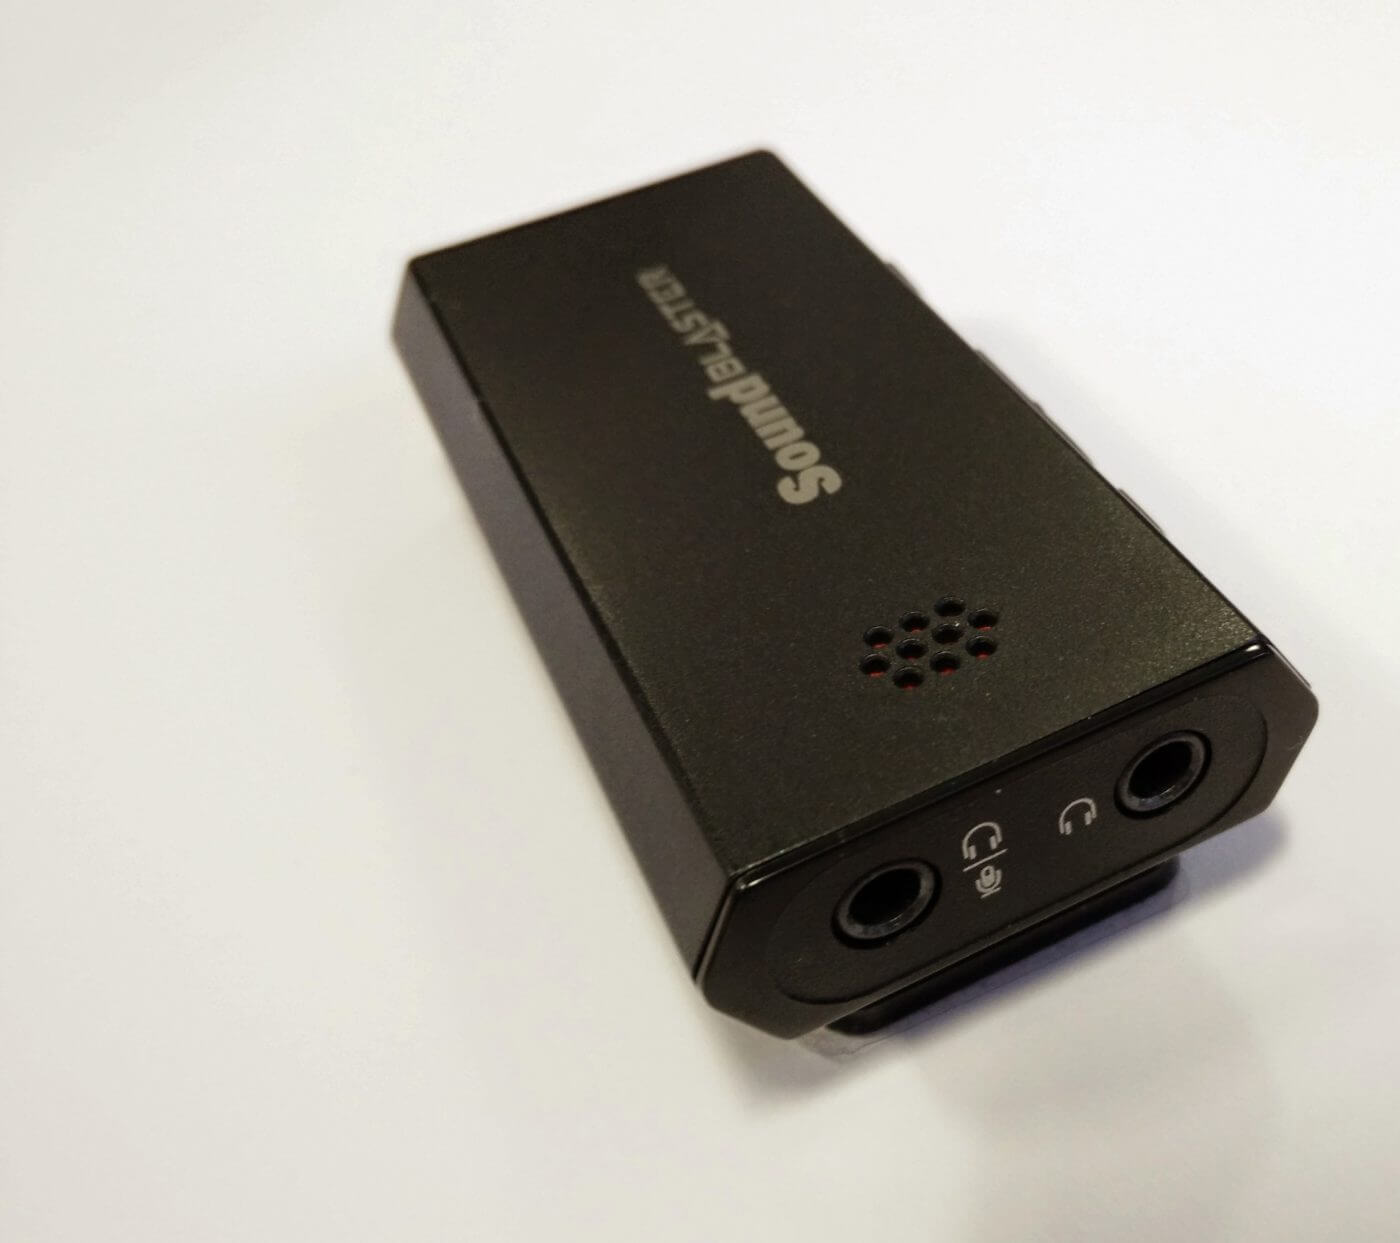 Creative Sound Blaster E1 Portable Amplifier Review - Geek